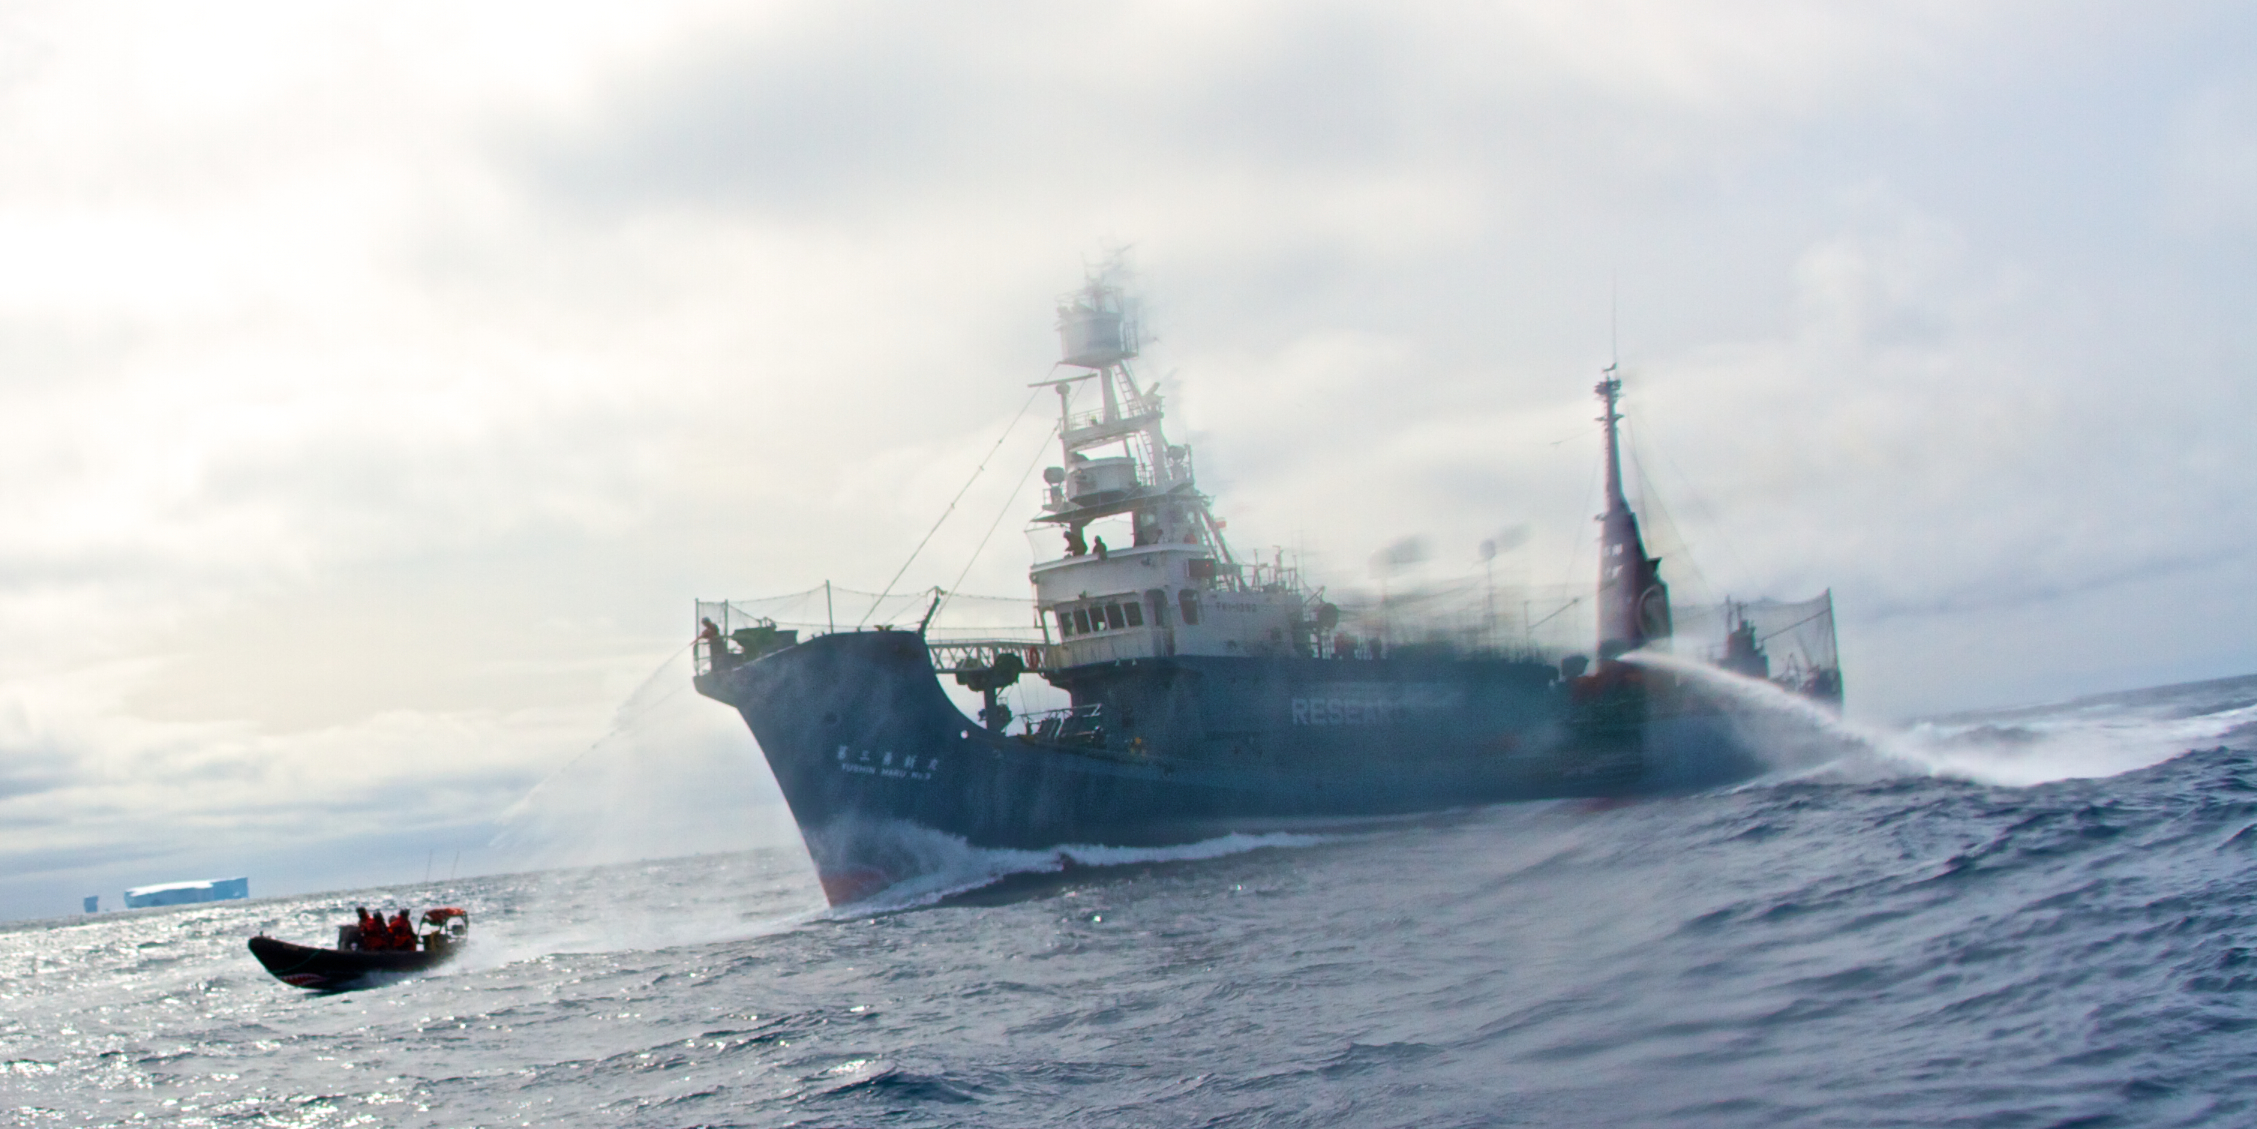 Delta crosses the bow of the Yushin Maru #3. Credit: Sea Shepherd Conservation Society